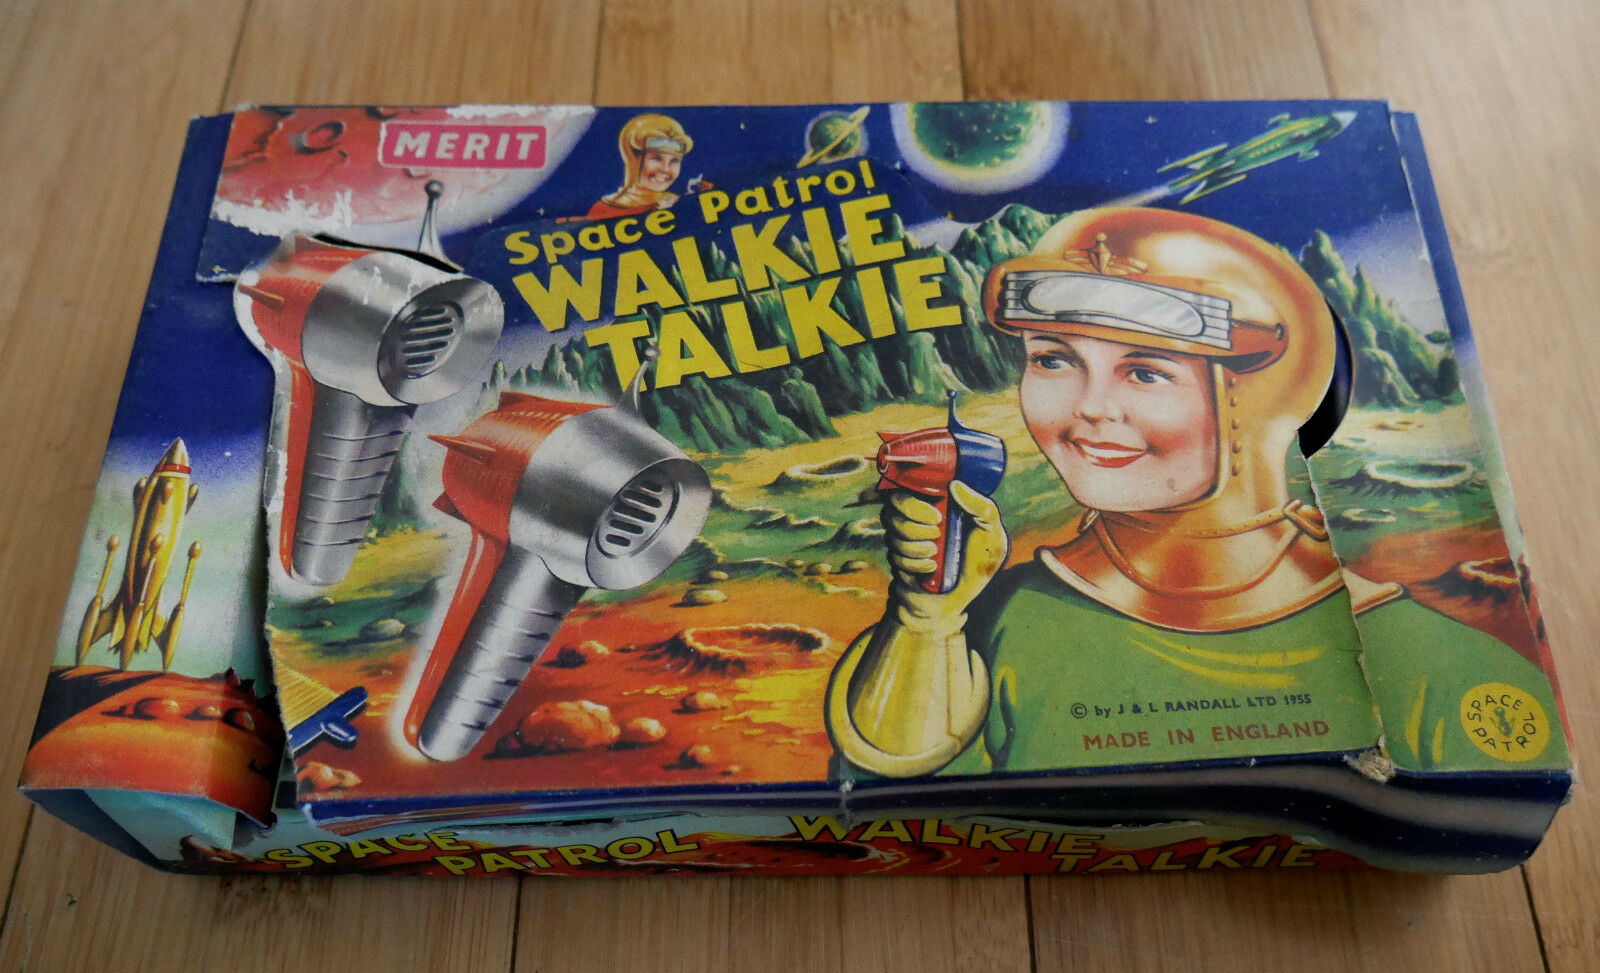 Merit SPACE PATROL Walkie Talkie Giocattolo Set 1955 rara in scatola Dan osare era